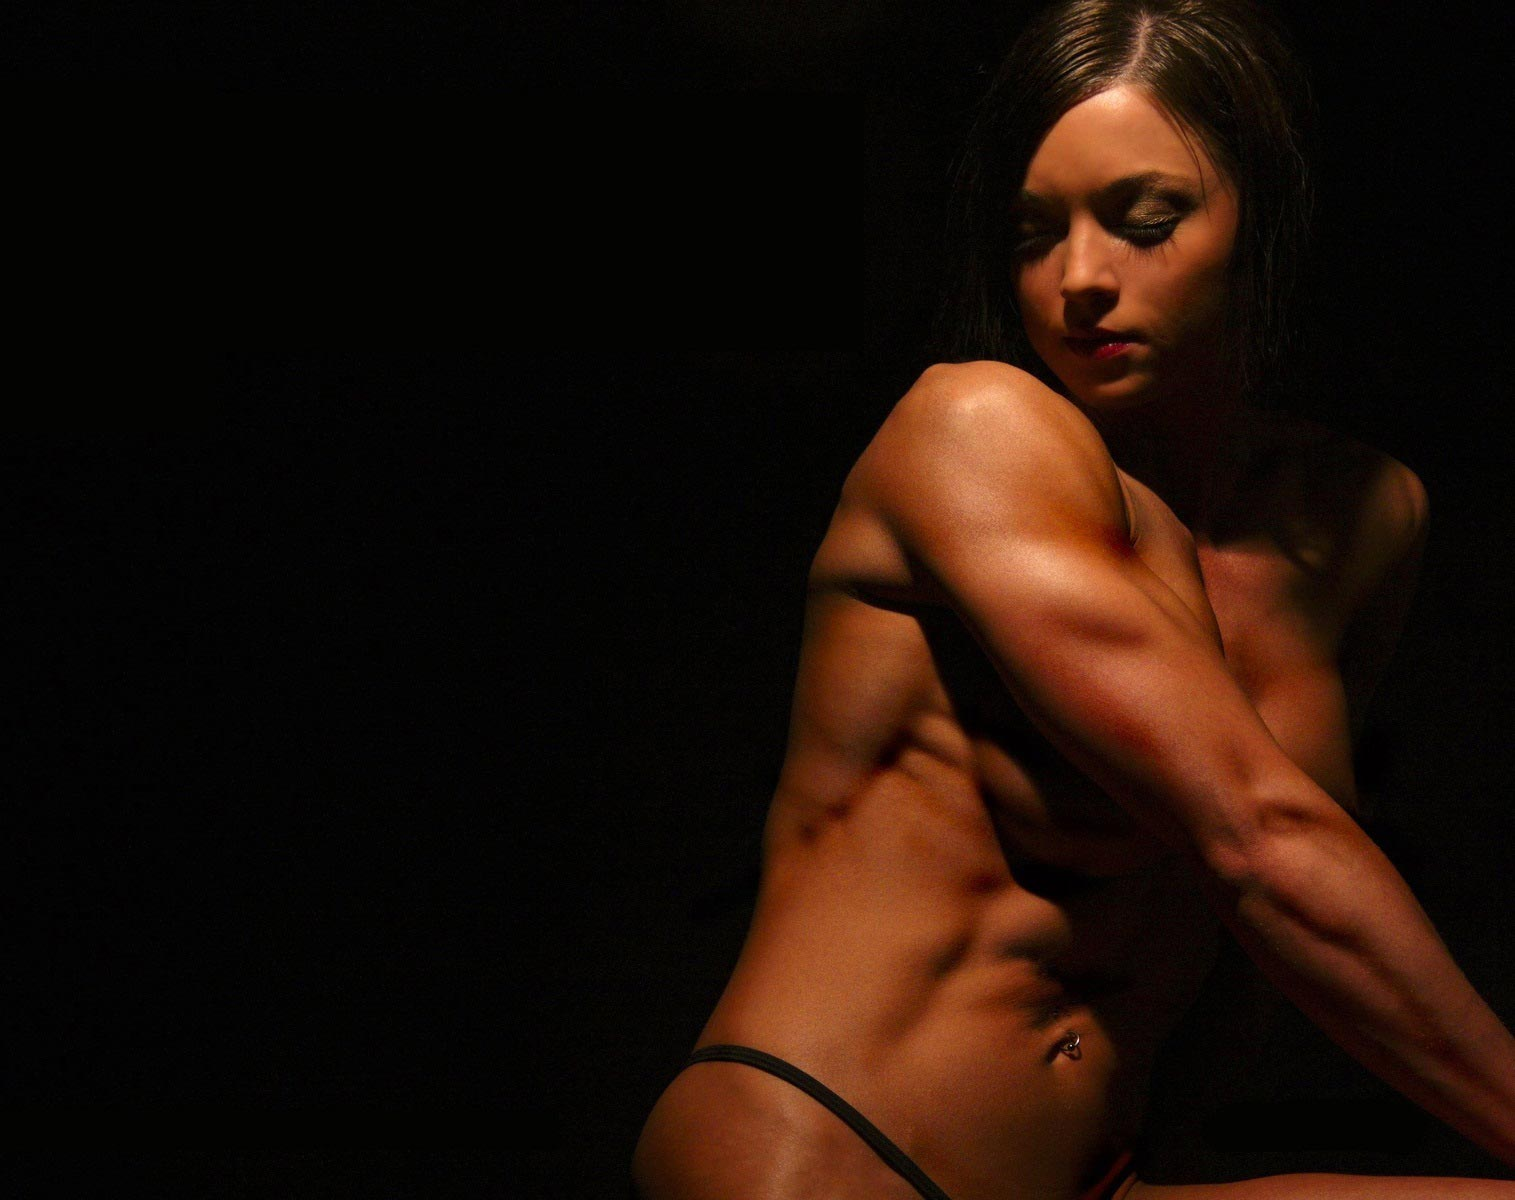 Muscles in the shadow 10 Fitness Babes Wallpapers